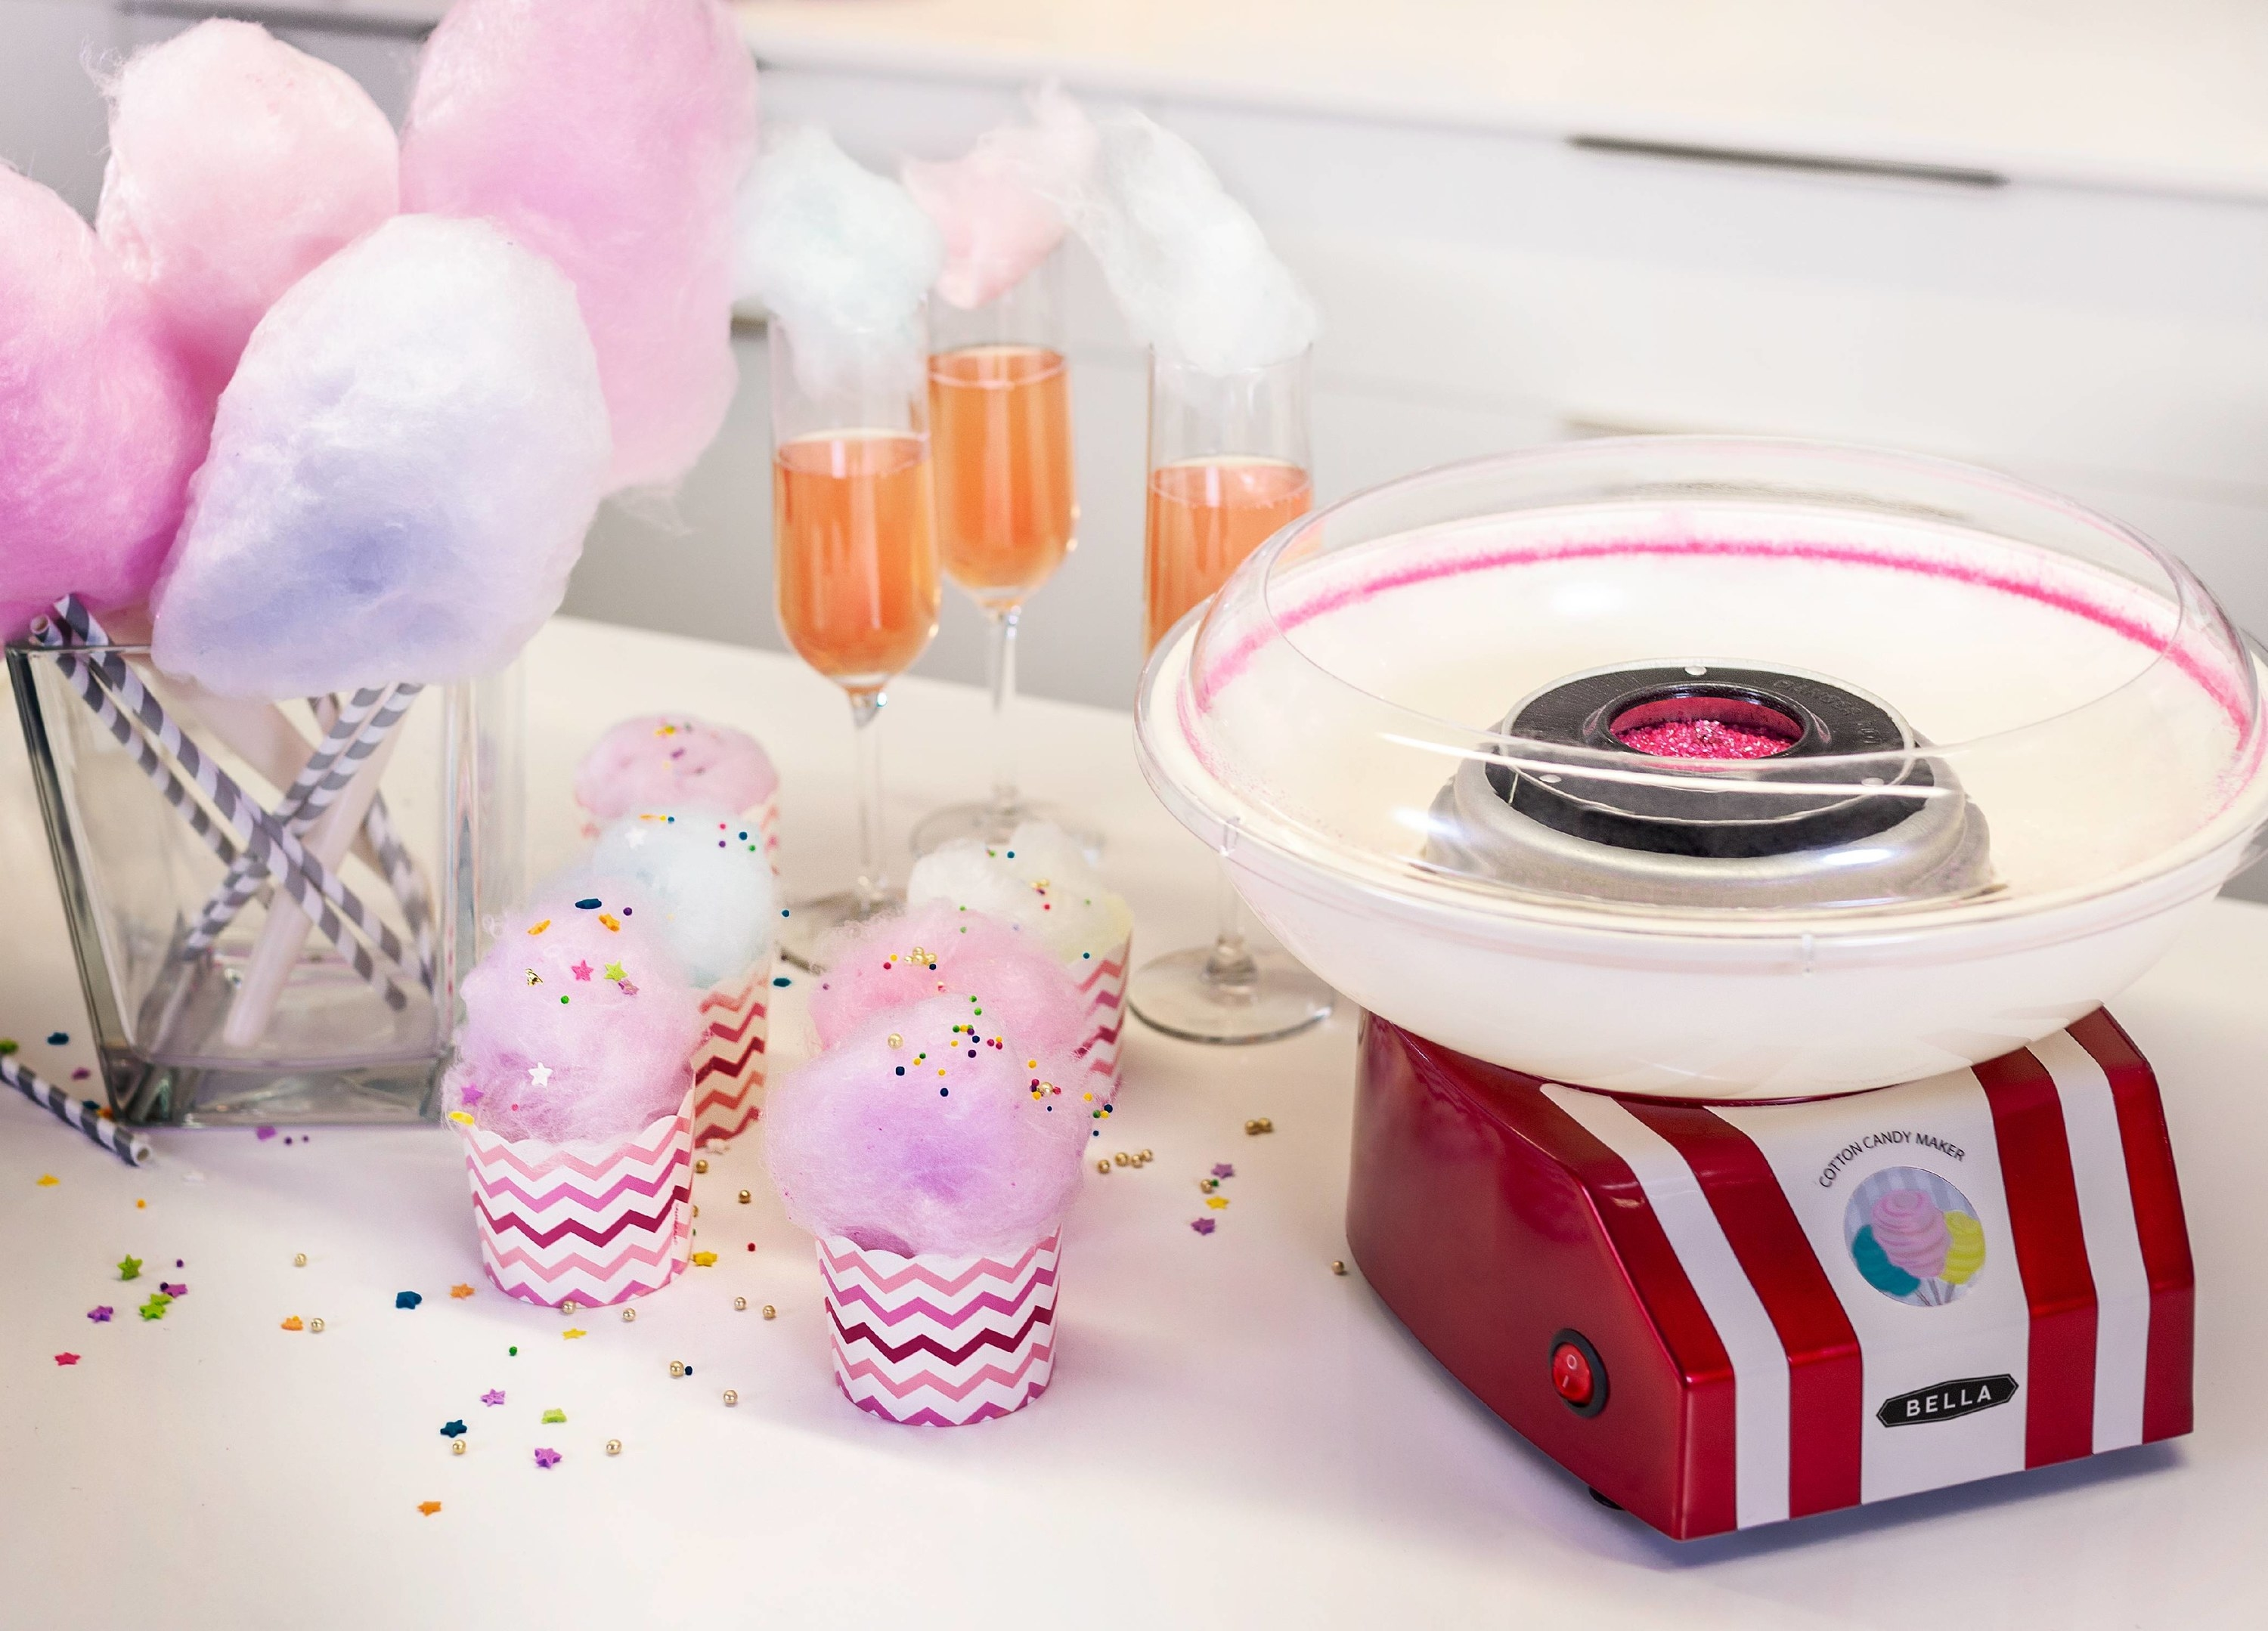 cotton candy maker on a counter with blue and pink cotton candy in the background